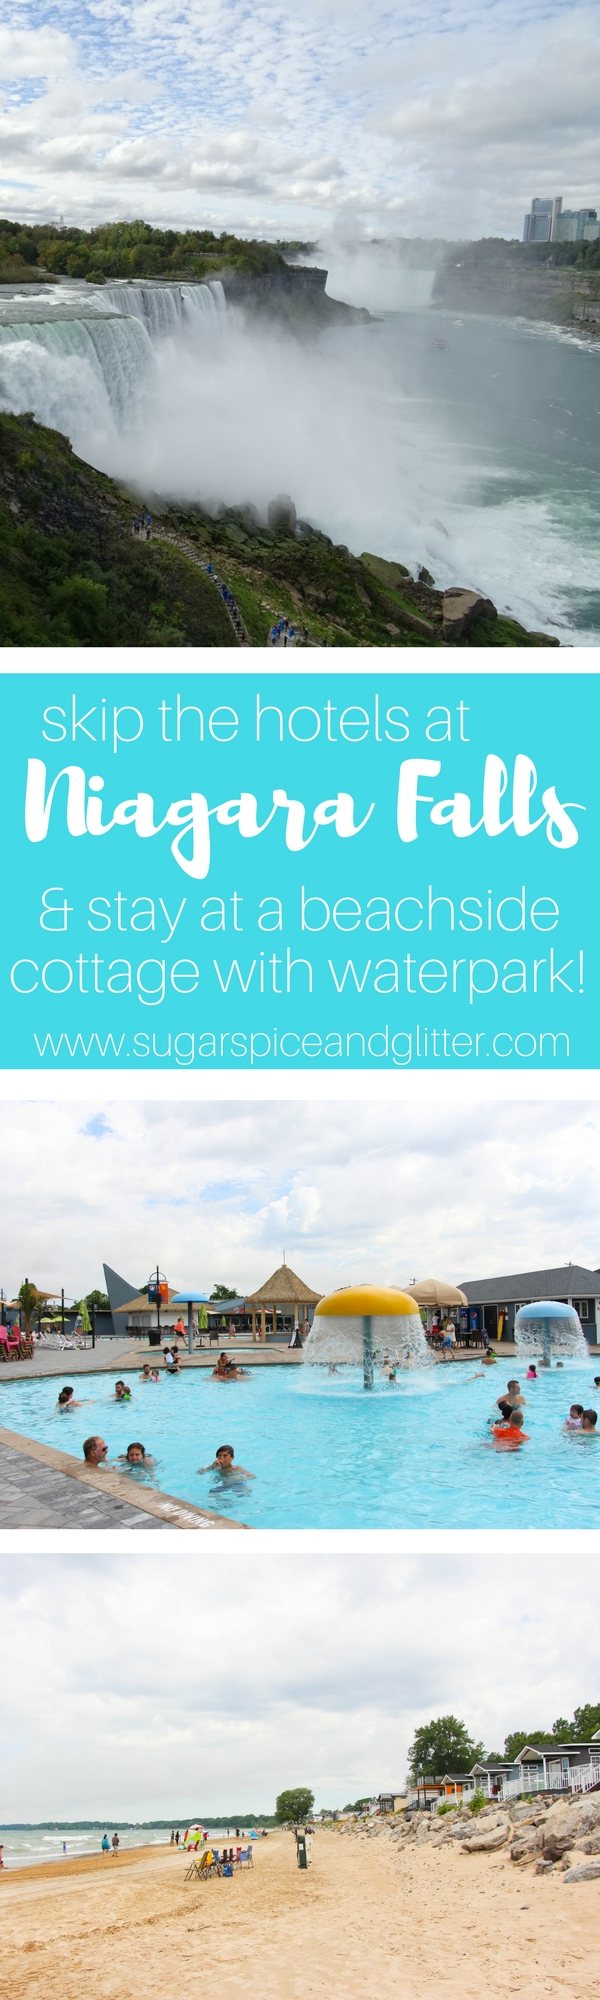 Skip the hotels and stay at this awesome beachside cottage resort for your Niagara Falls Family Vacation - on a budget!